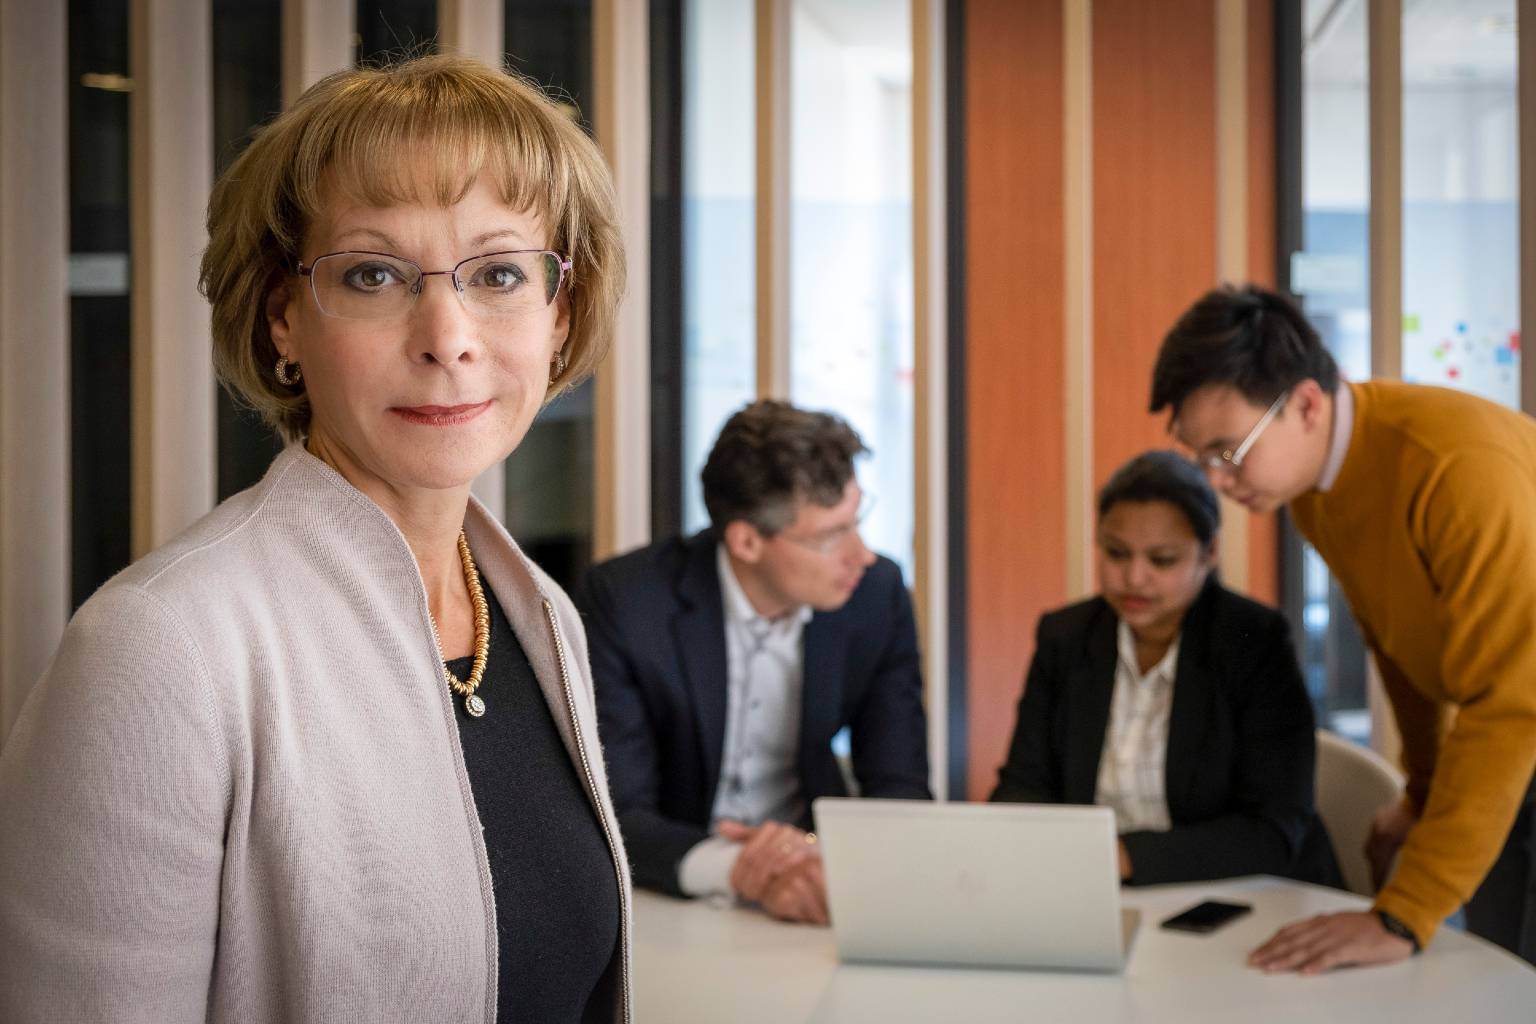 Nancy McKinstry, CEO & Chairman of Wolters Kluwer